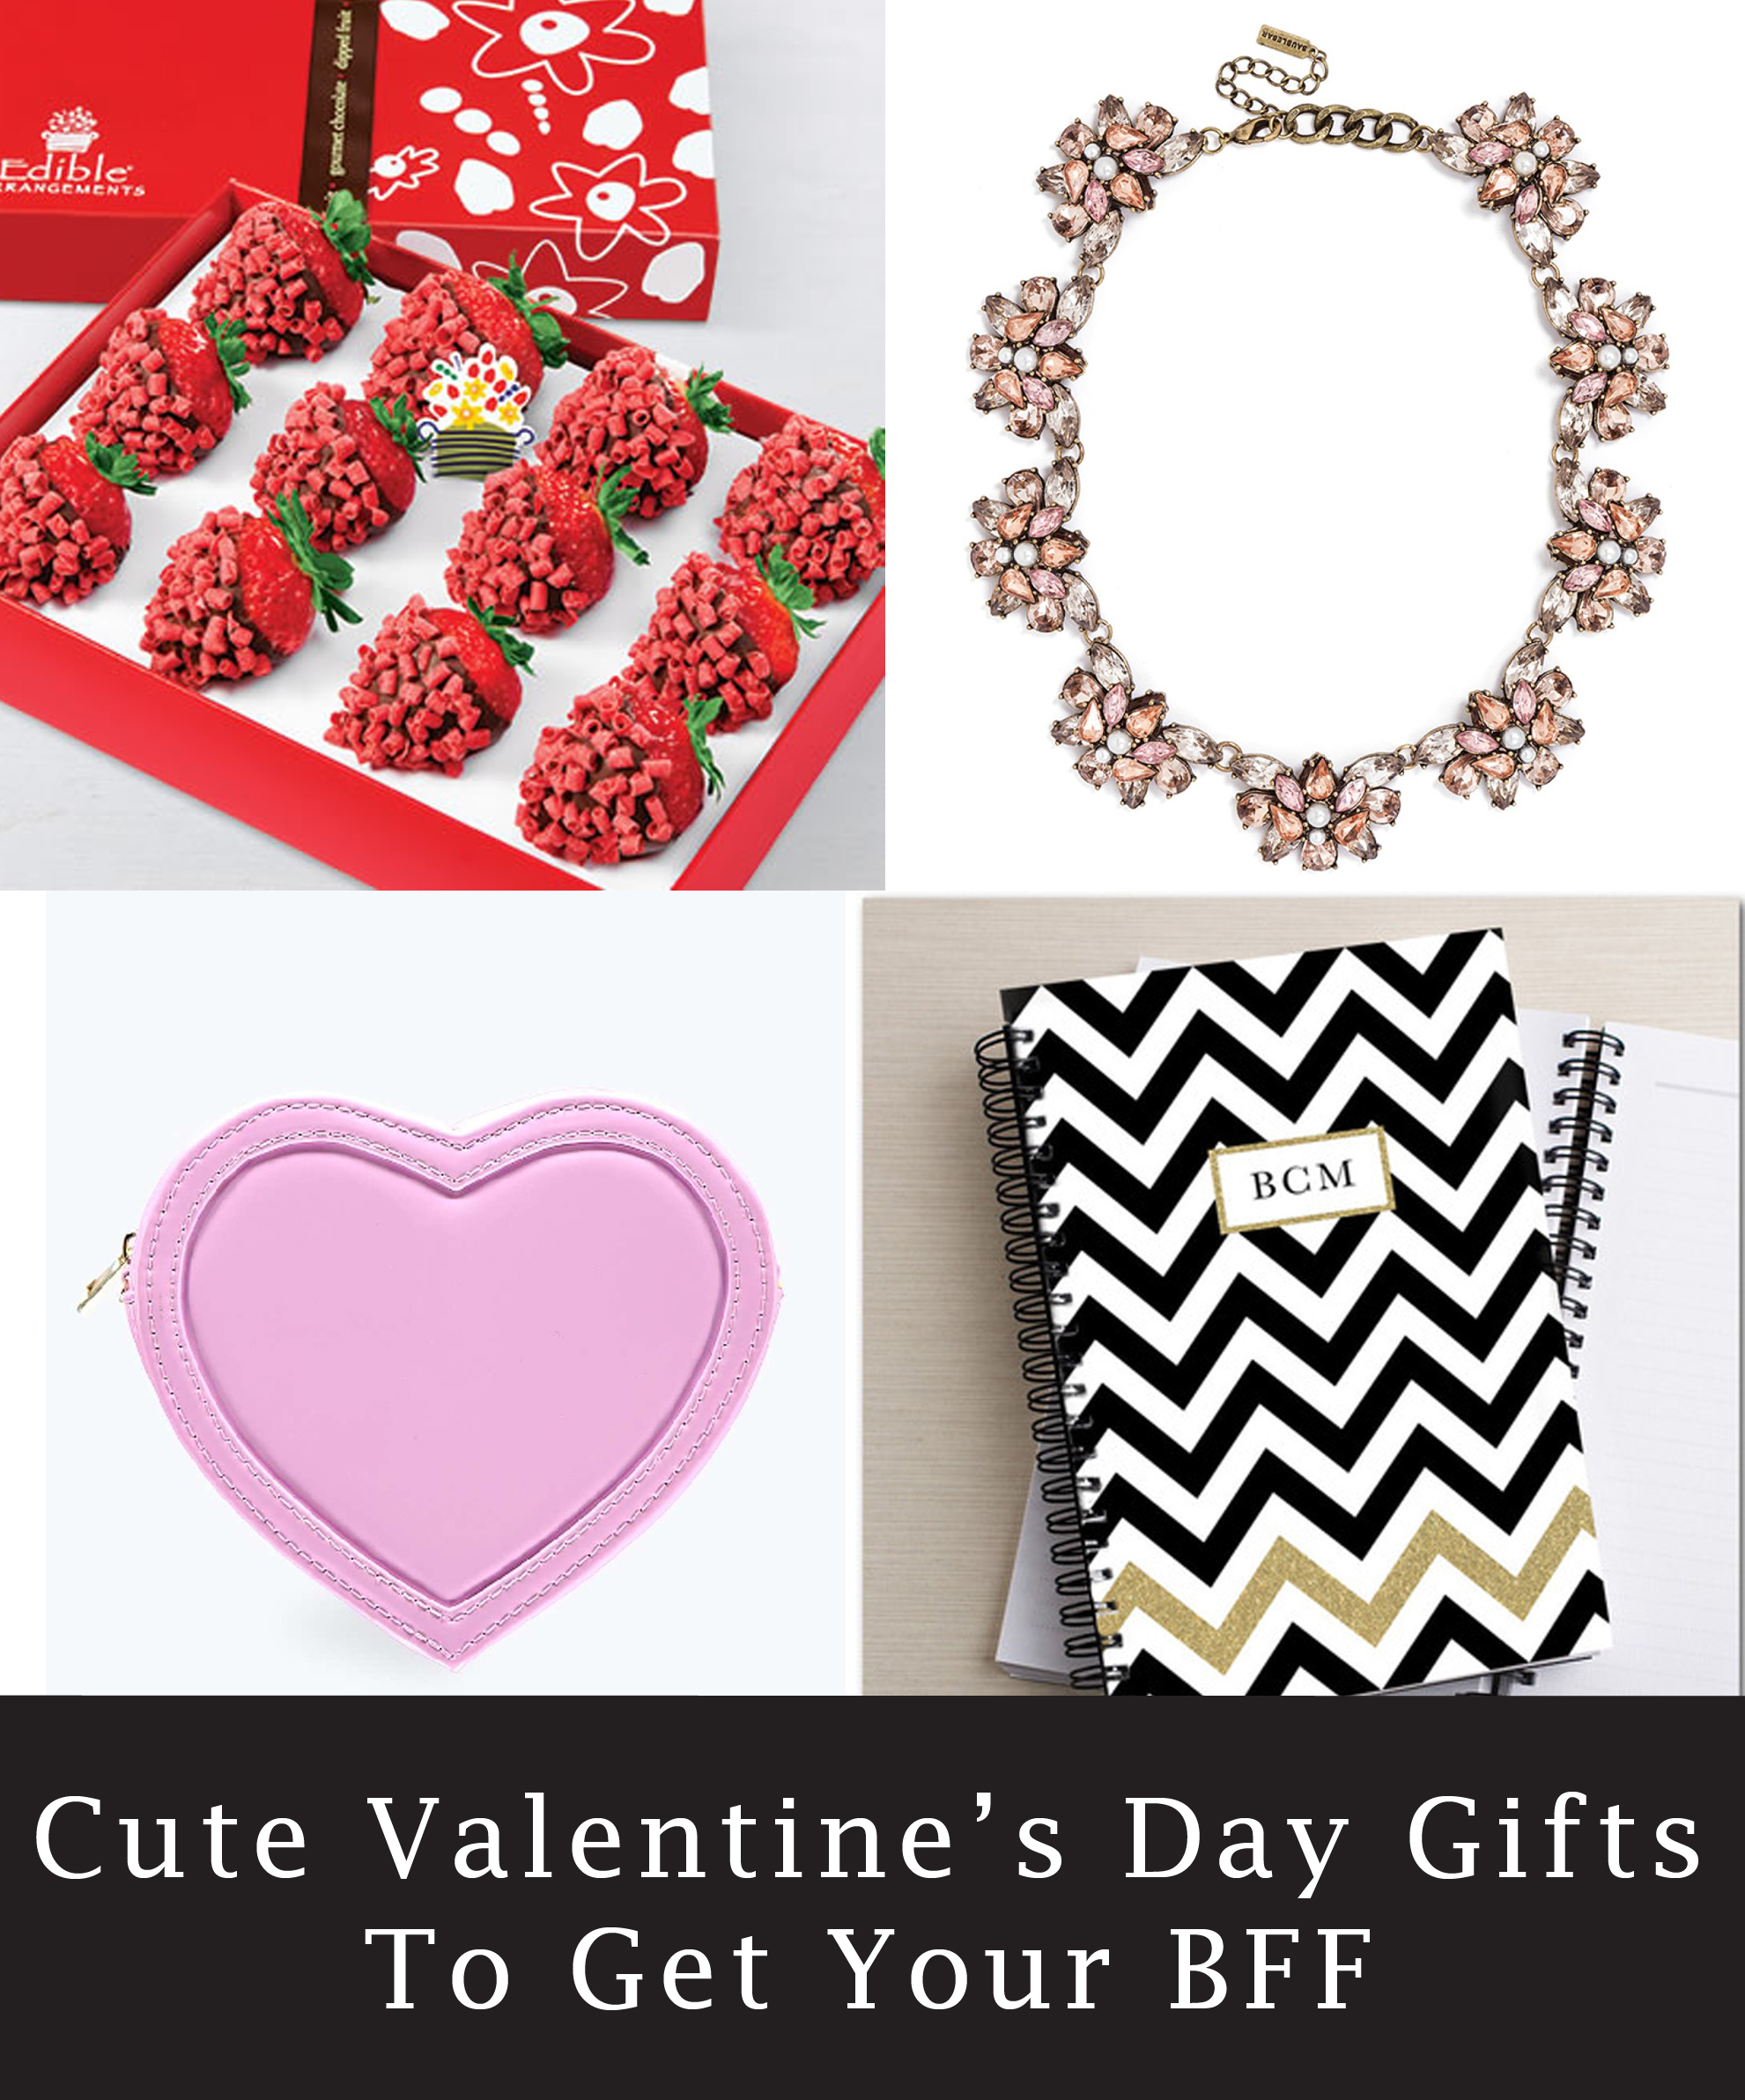 7 cute and girly valentine's day gift ideas for your bff | stylish